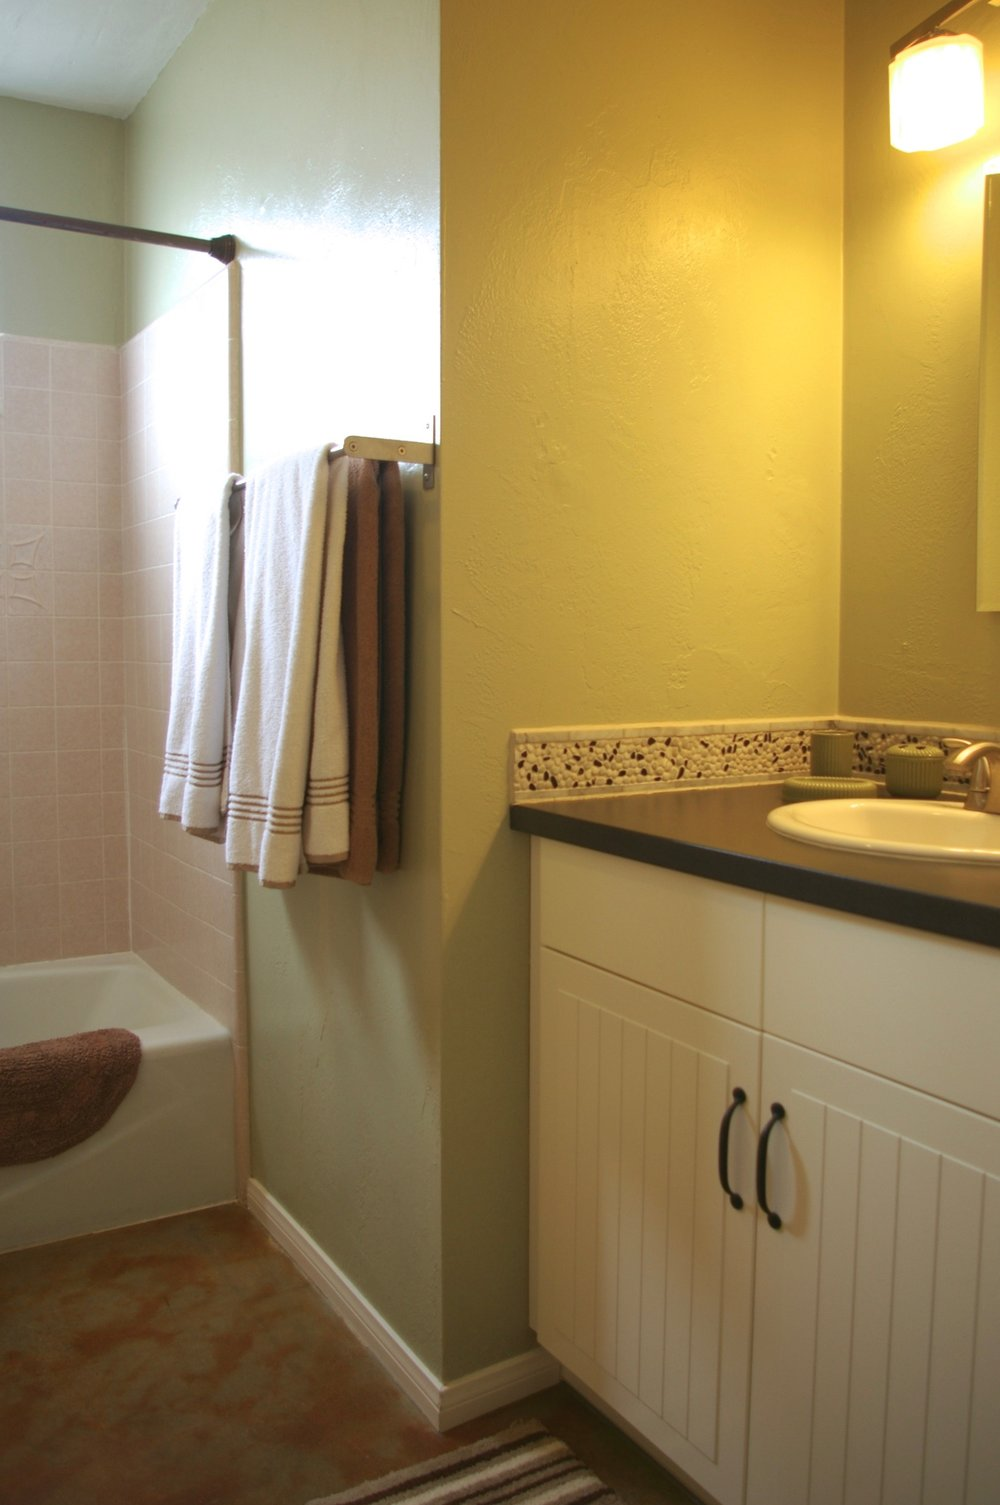 Rent29 Cactus West Bathroom